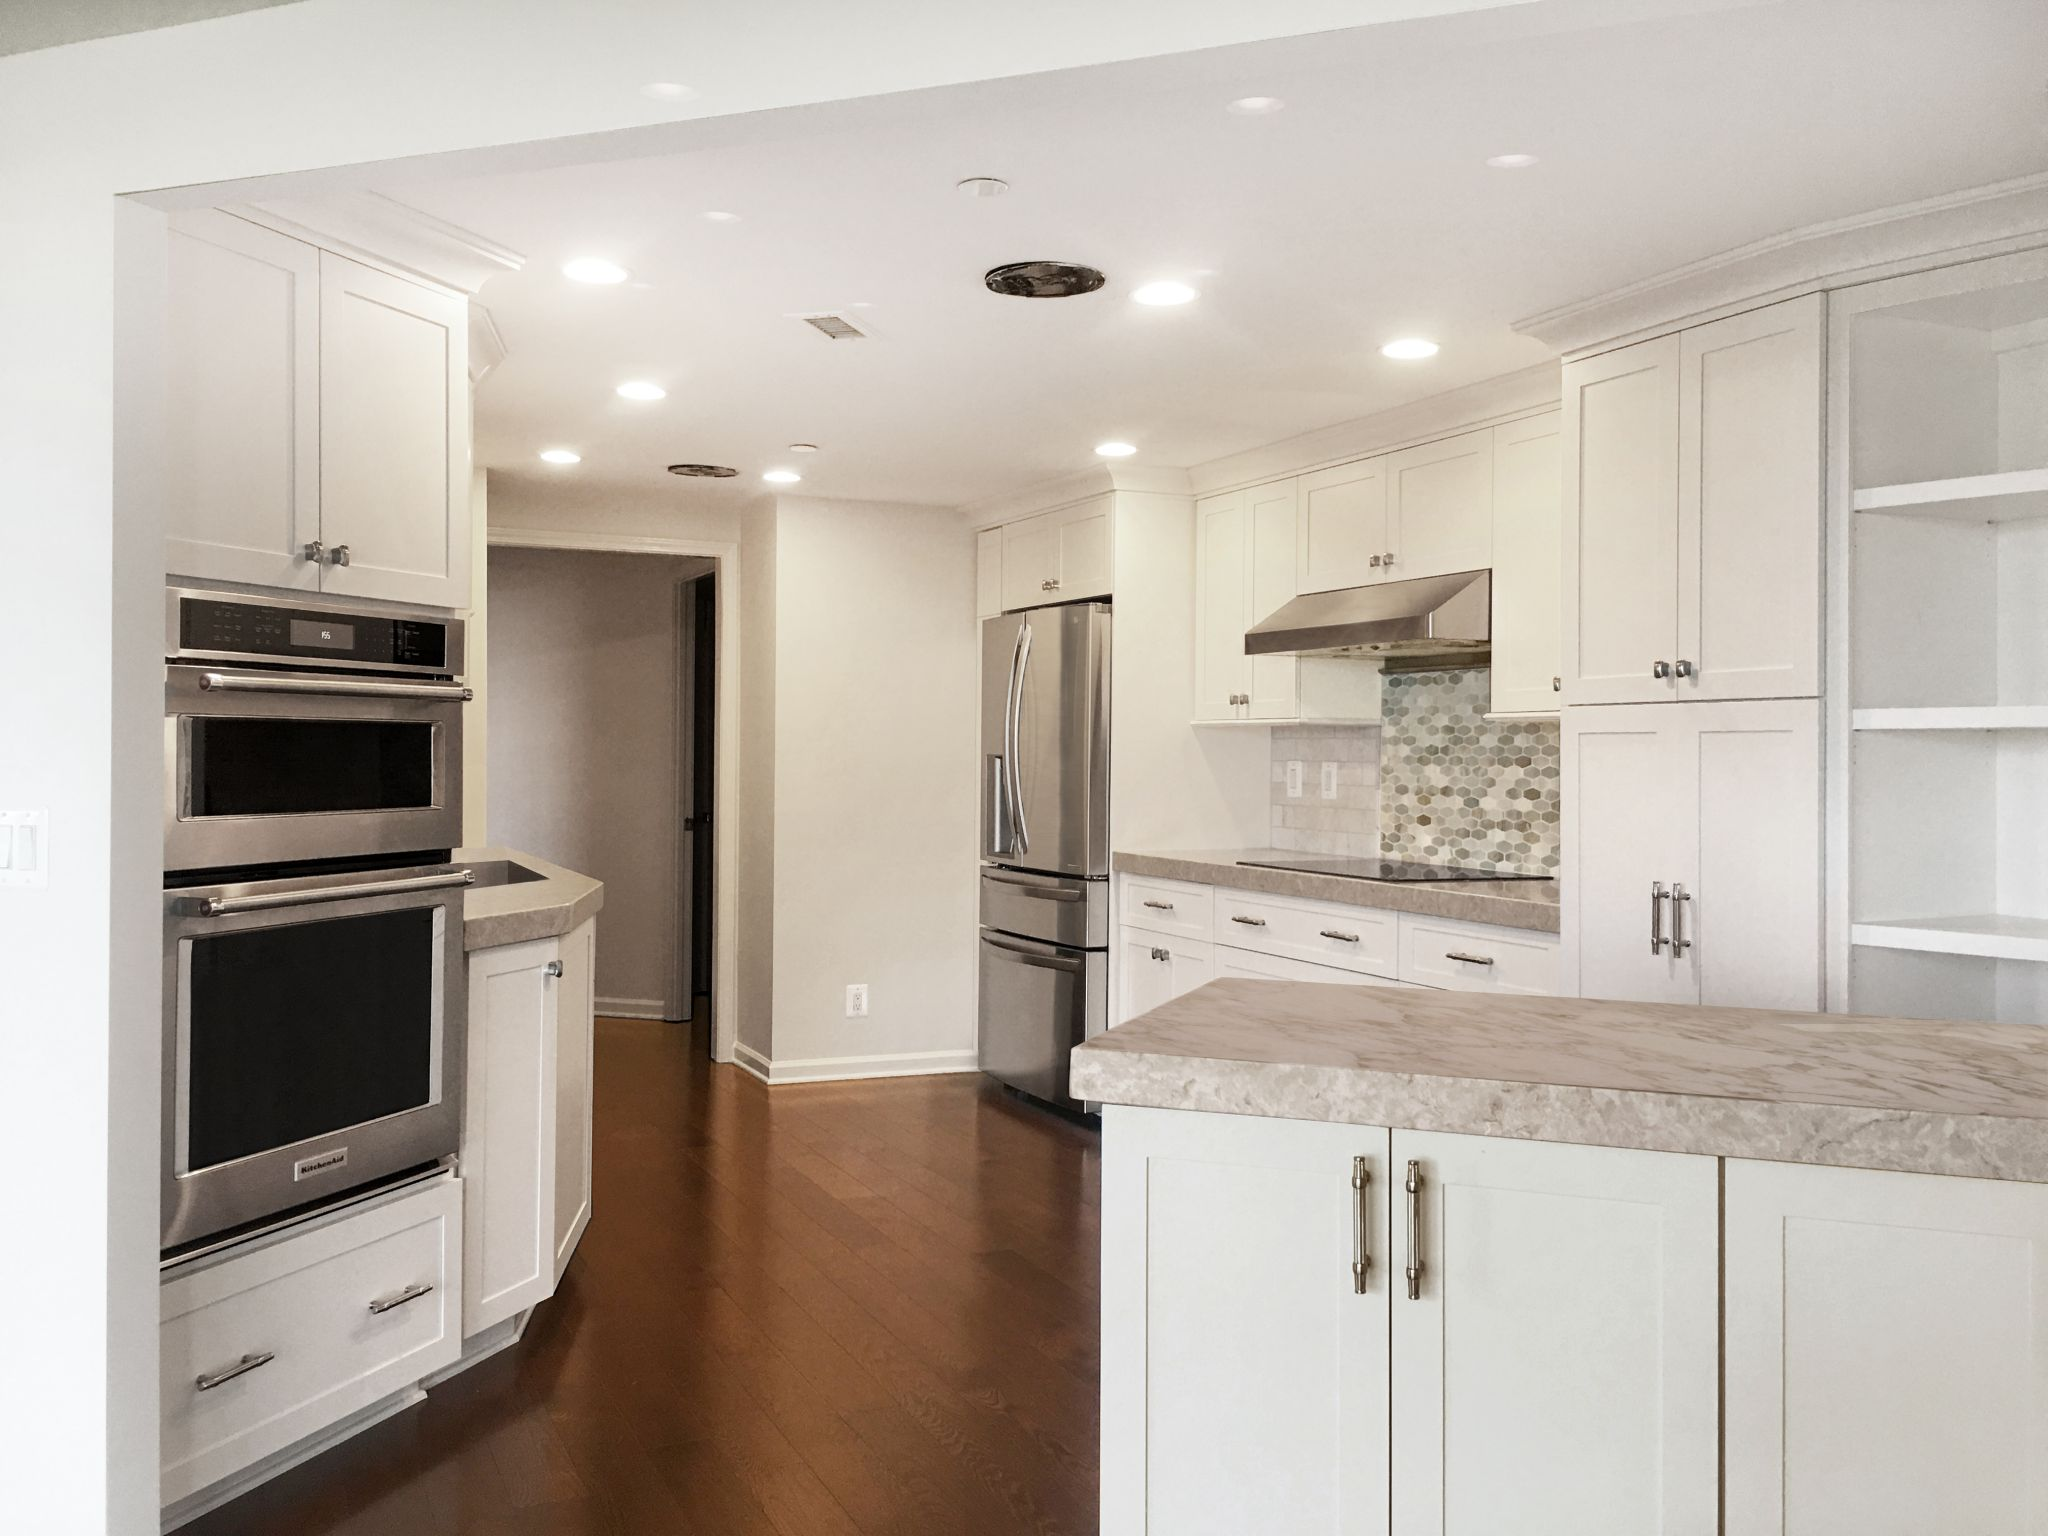 Delicieux Kitchen Remodel In Condo | Chevy Chase, MD